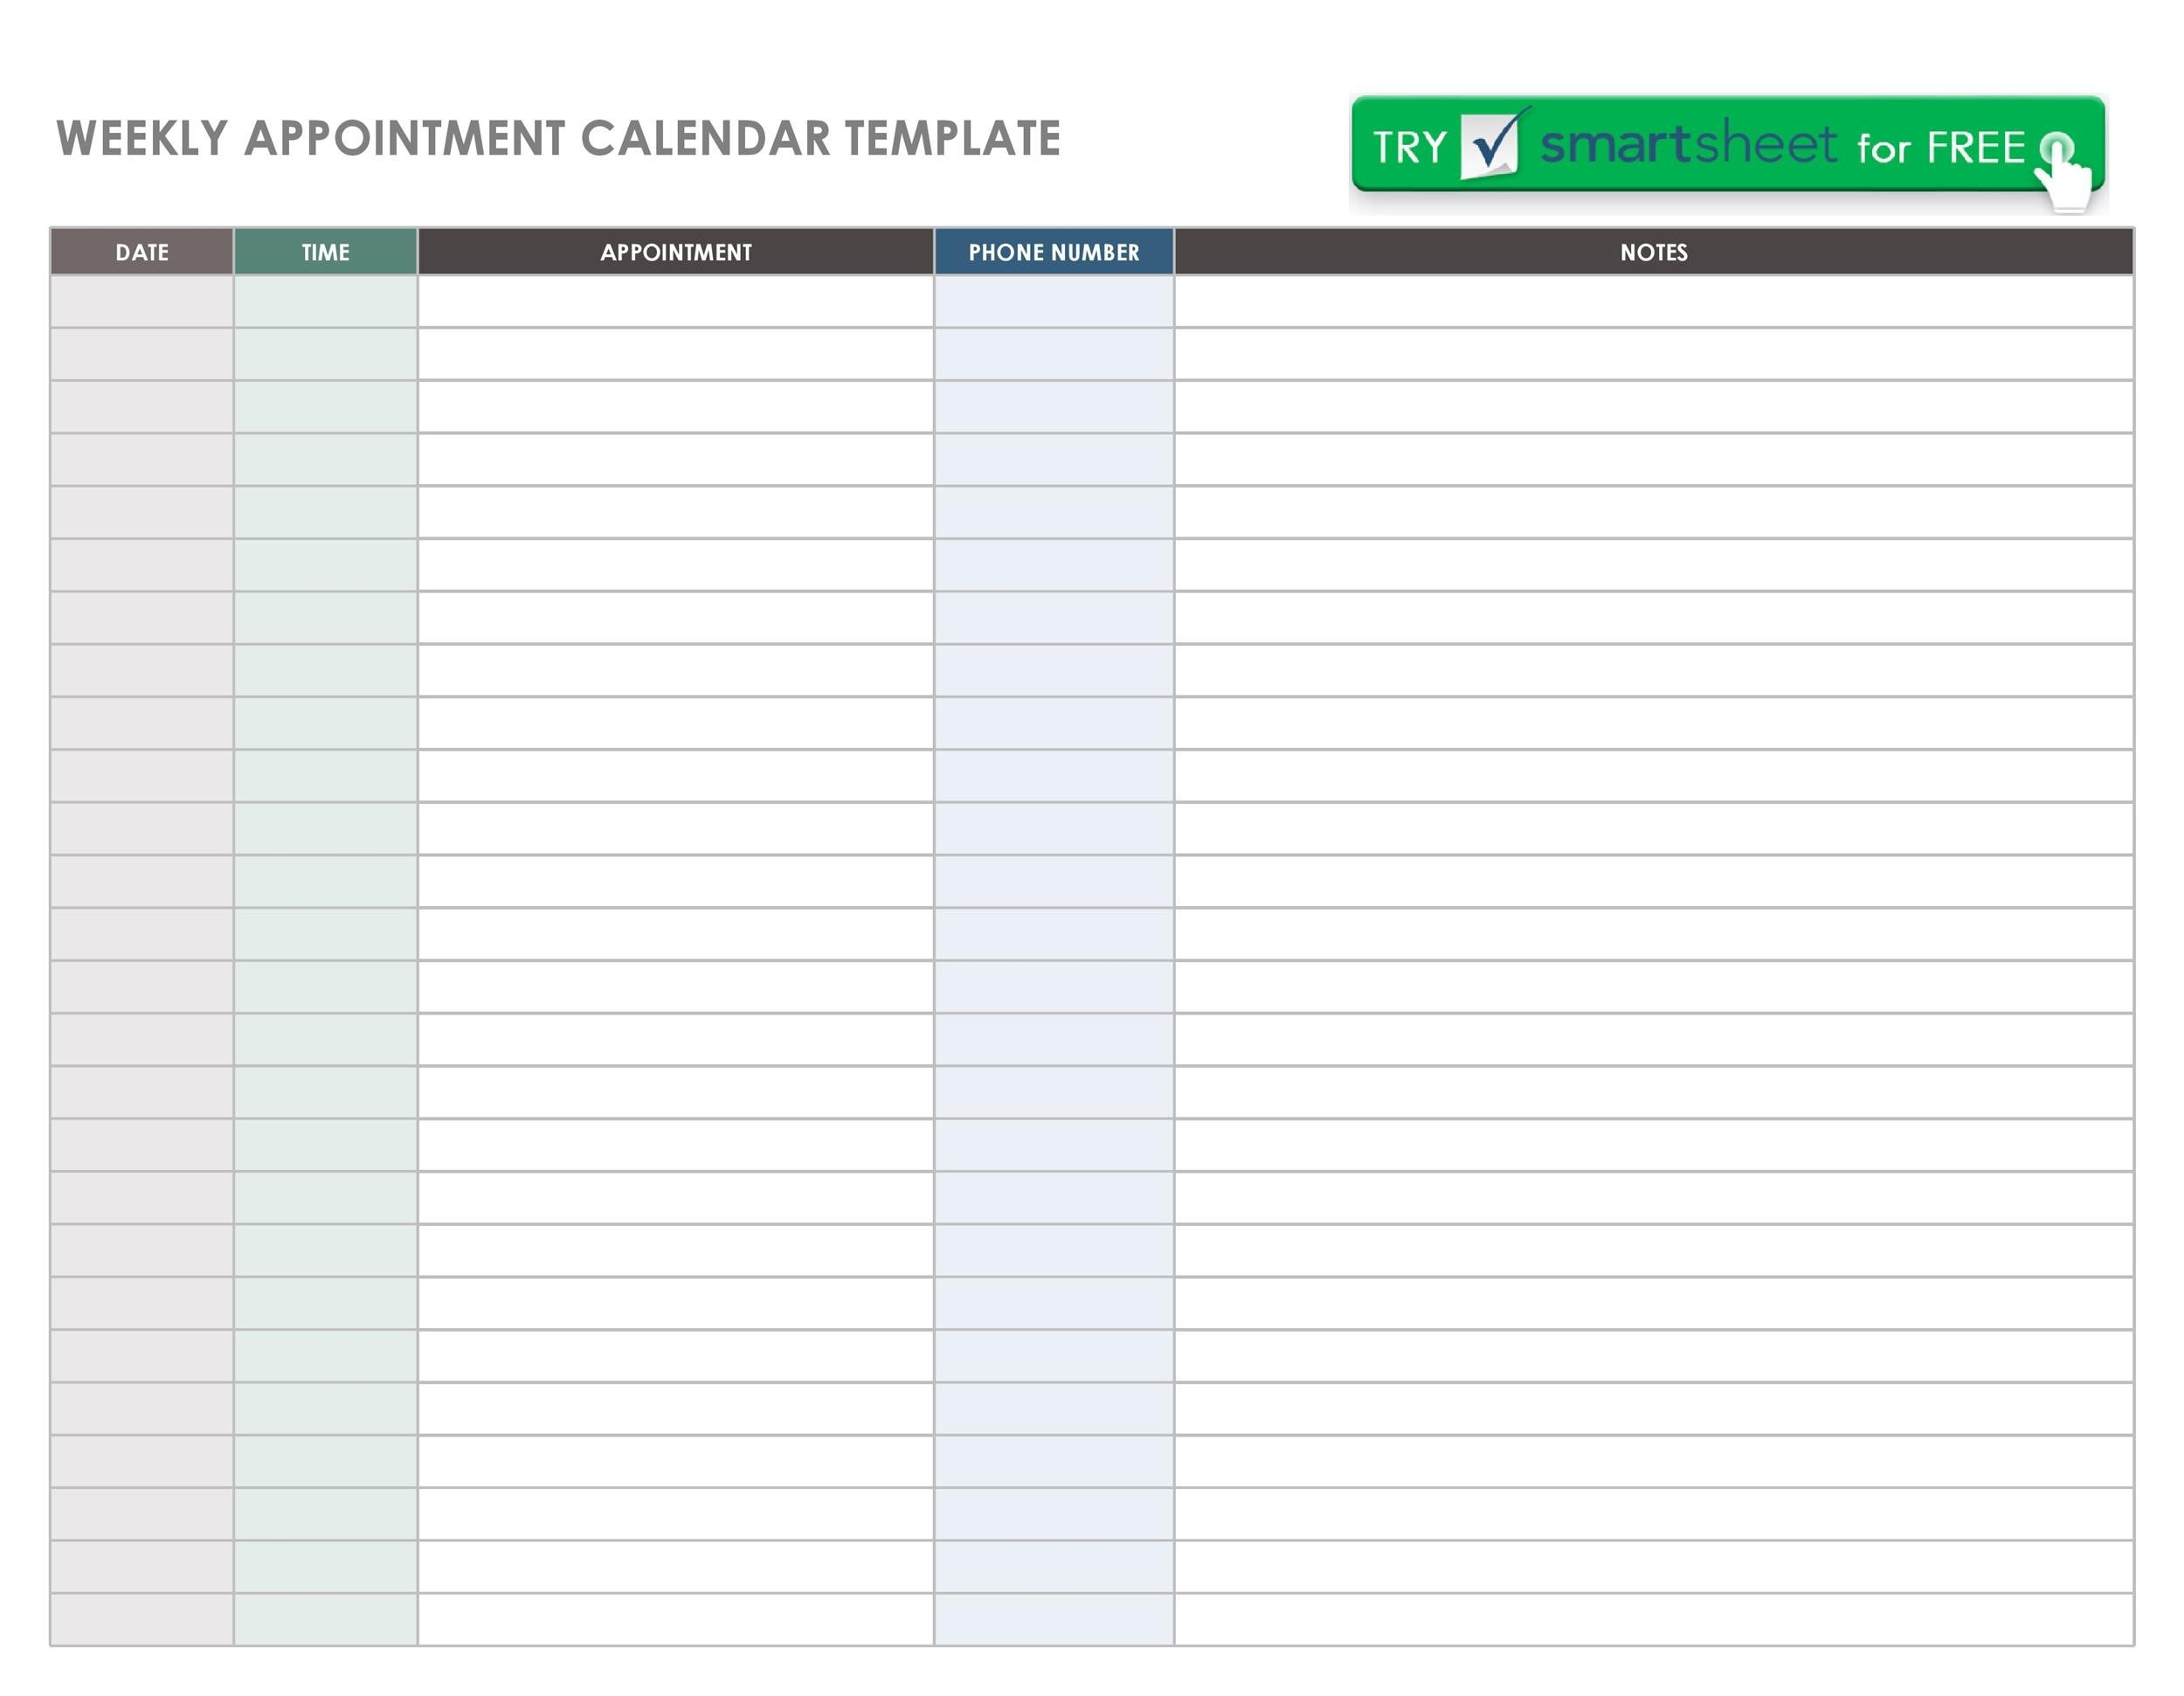 45 Printable Appointment Schedule Templates Appointment Calendars